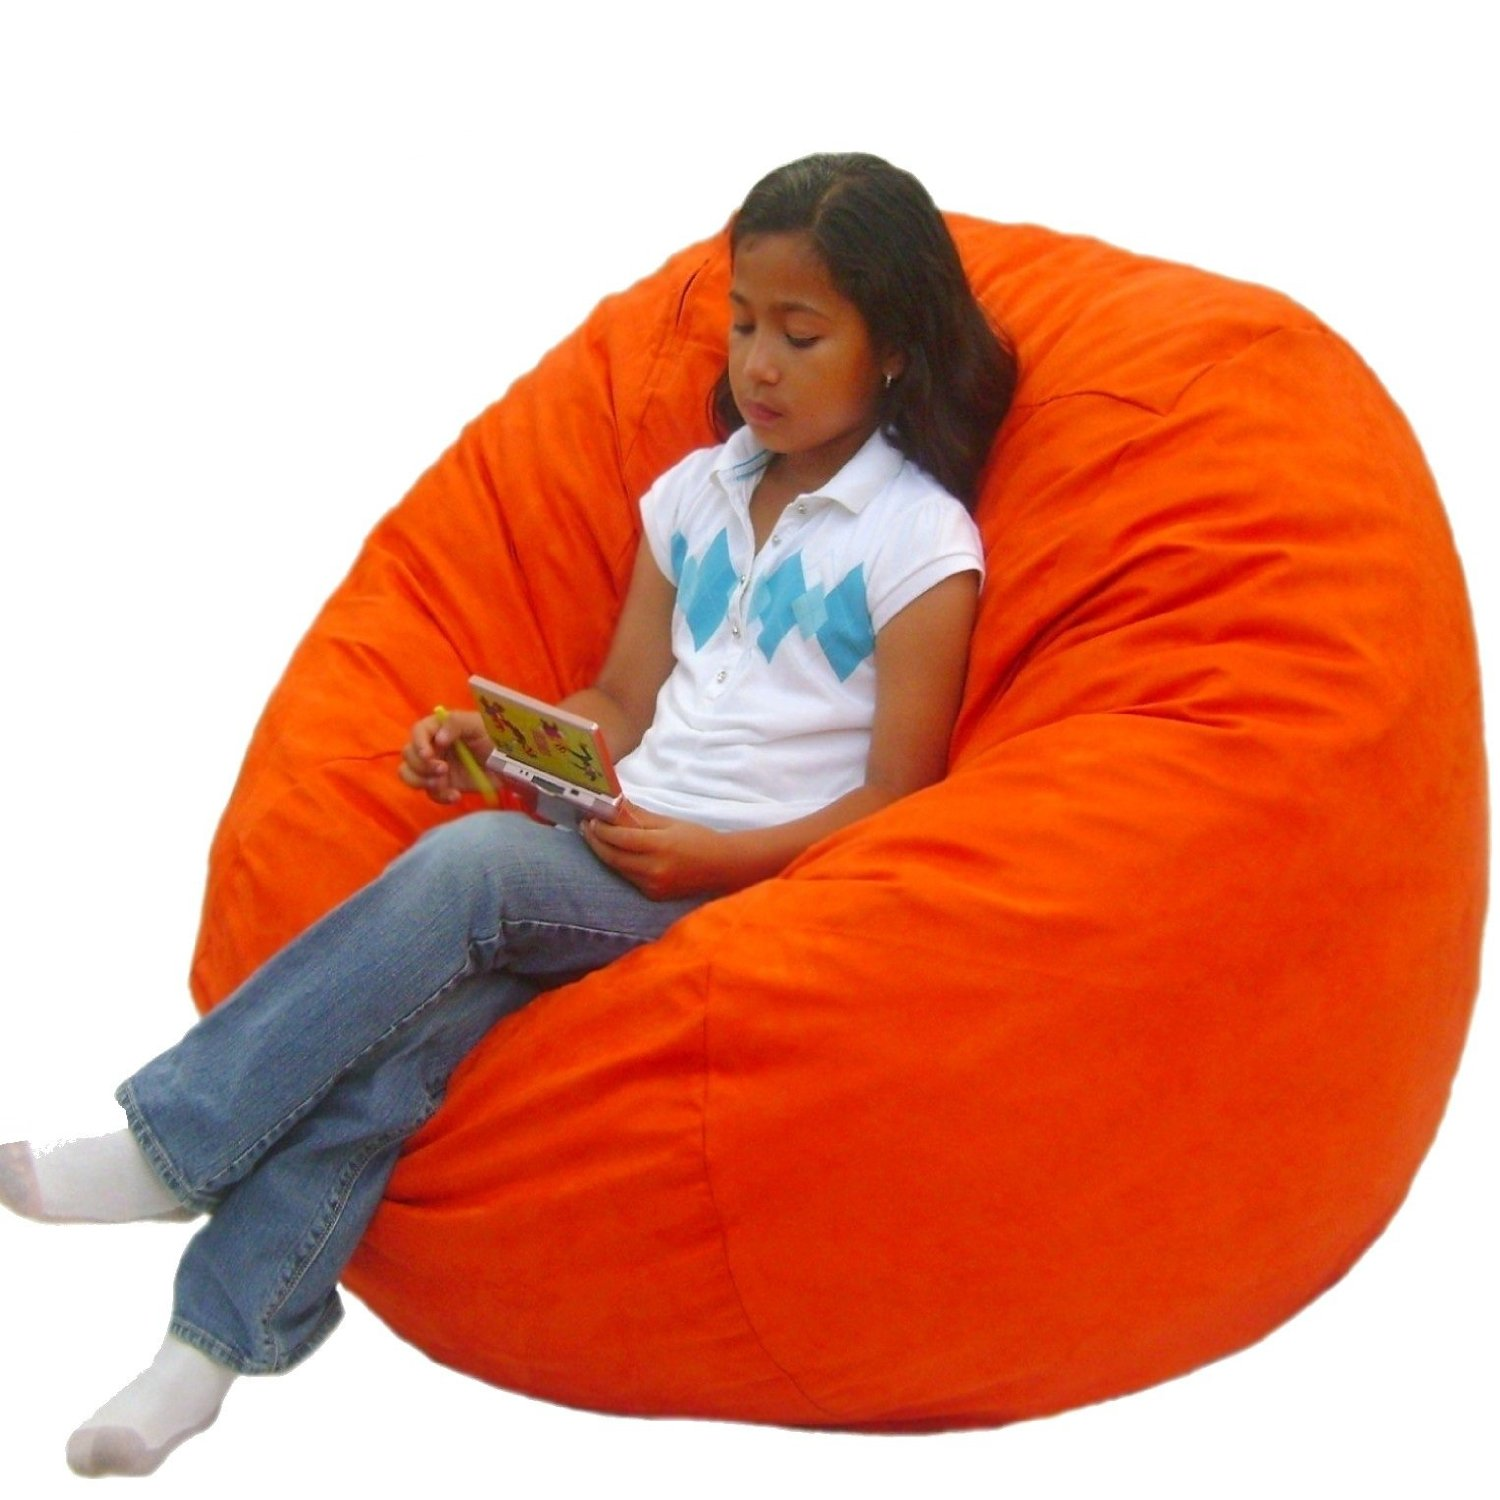 Marvelous Top 10 Best Bean Bag Chairs For Kids Reviews 2019 Beatyapartments Chair Design Images Beatyapartmentscom